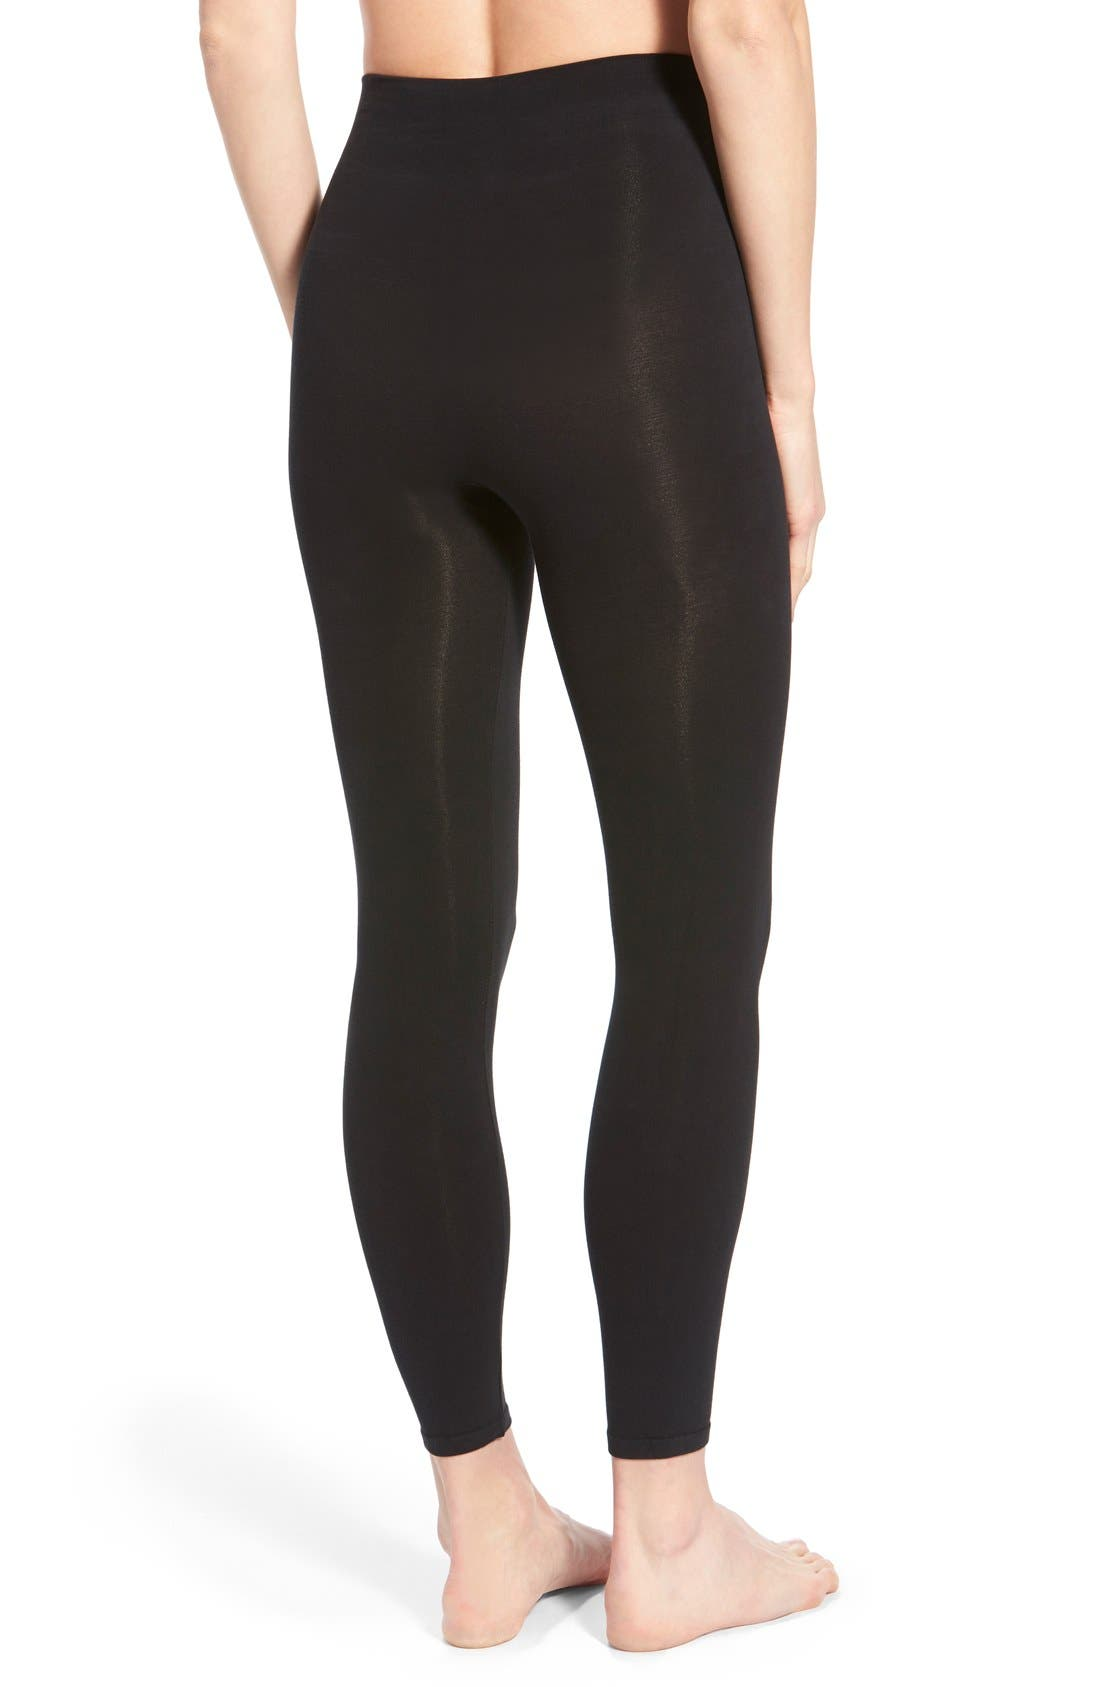 Alternate Image 2  - SPANX® 'Look-at-Me' Shaping Leggings